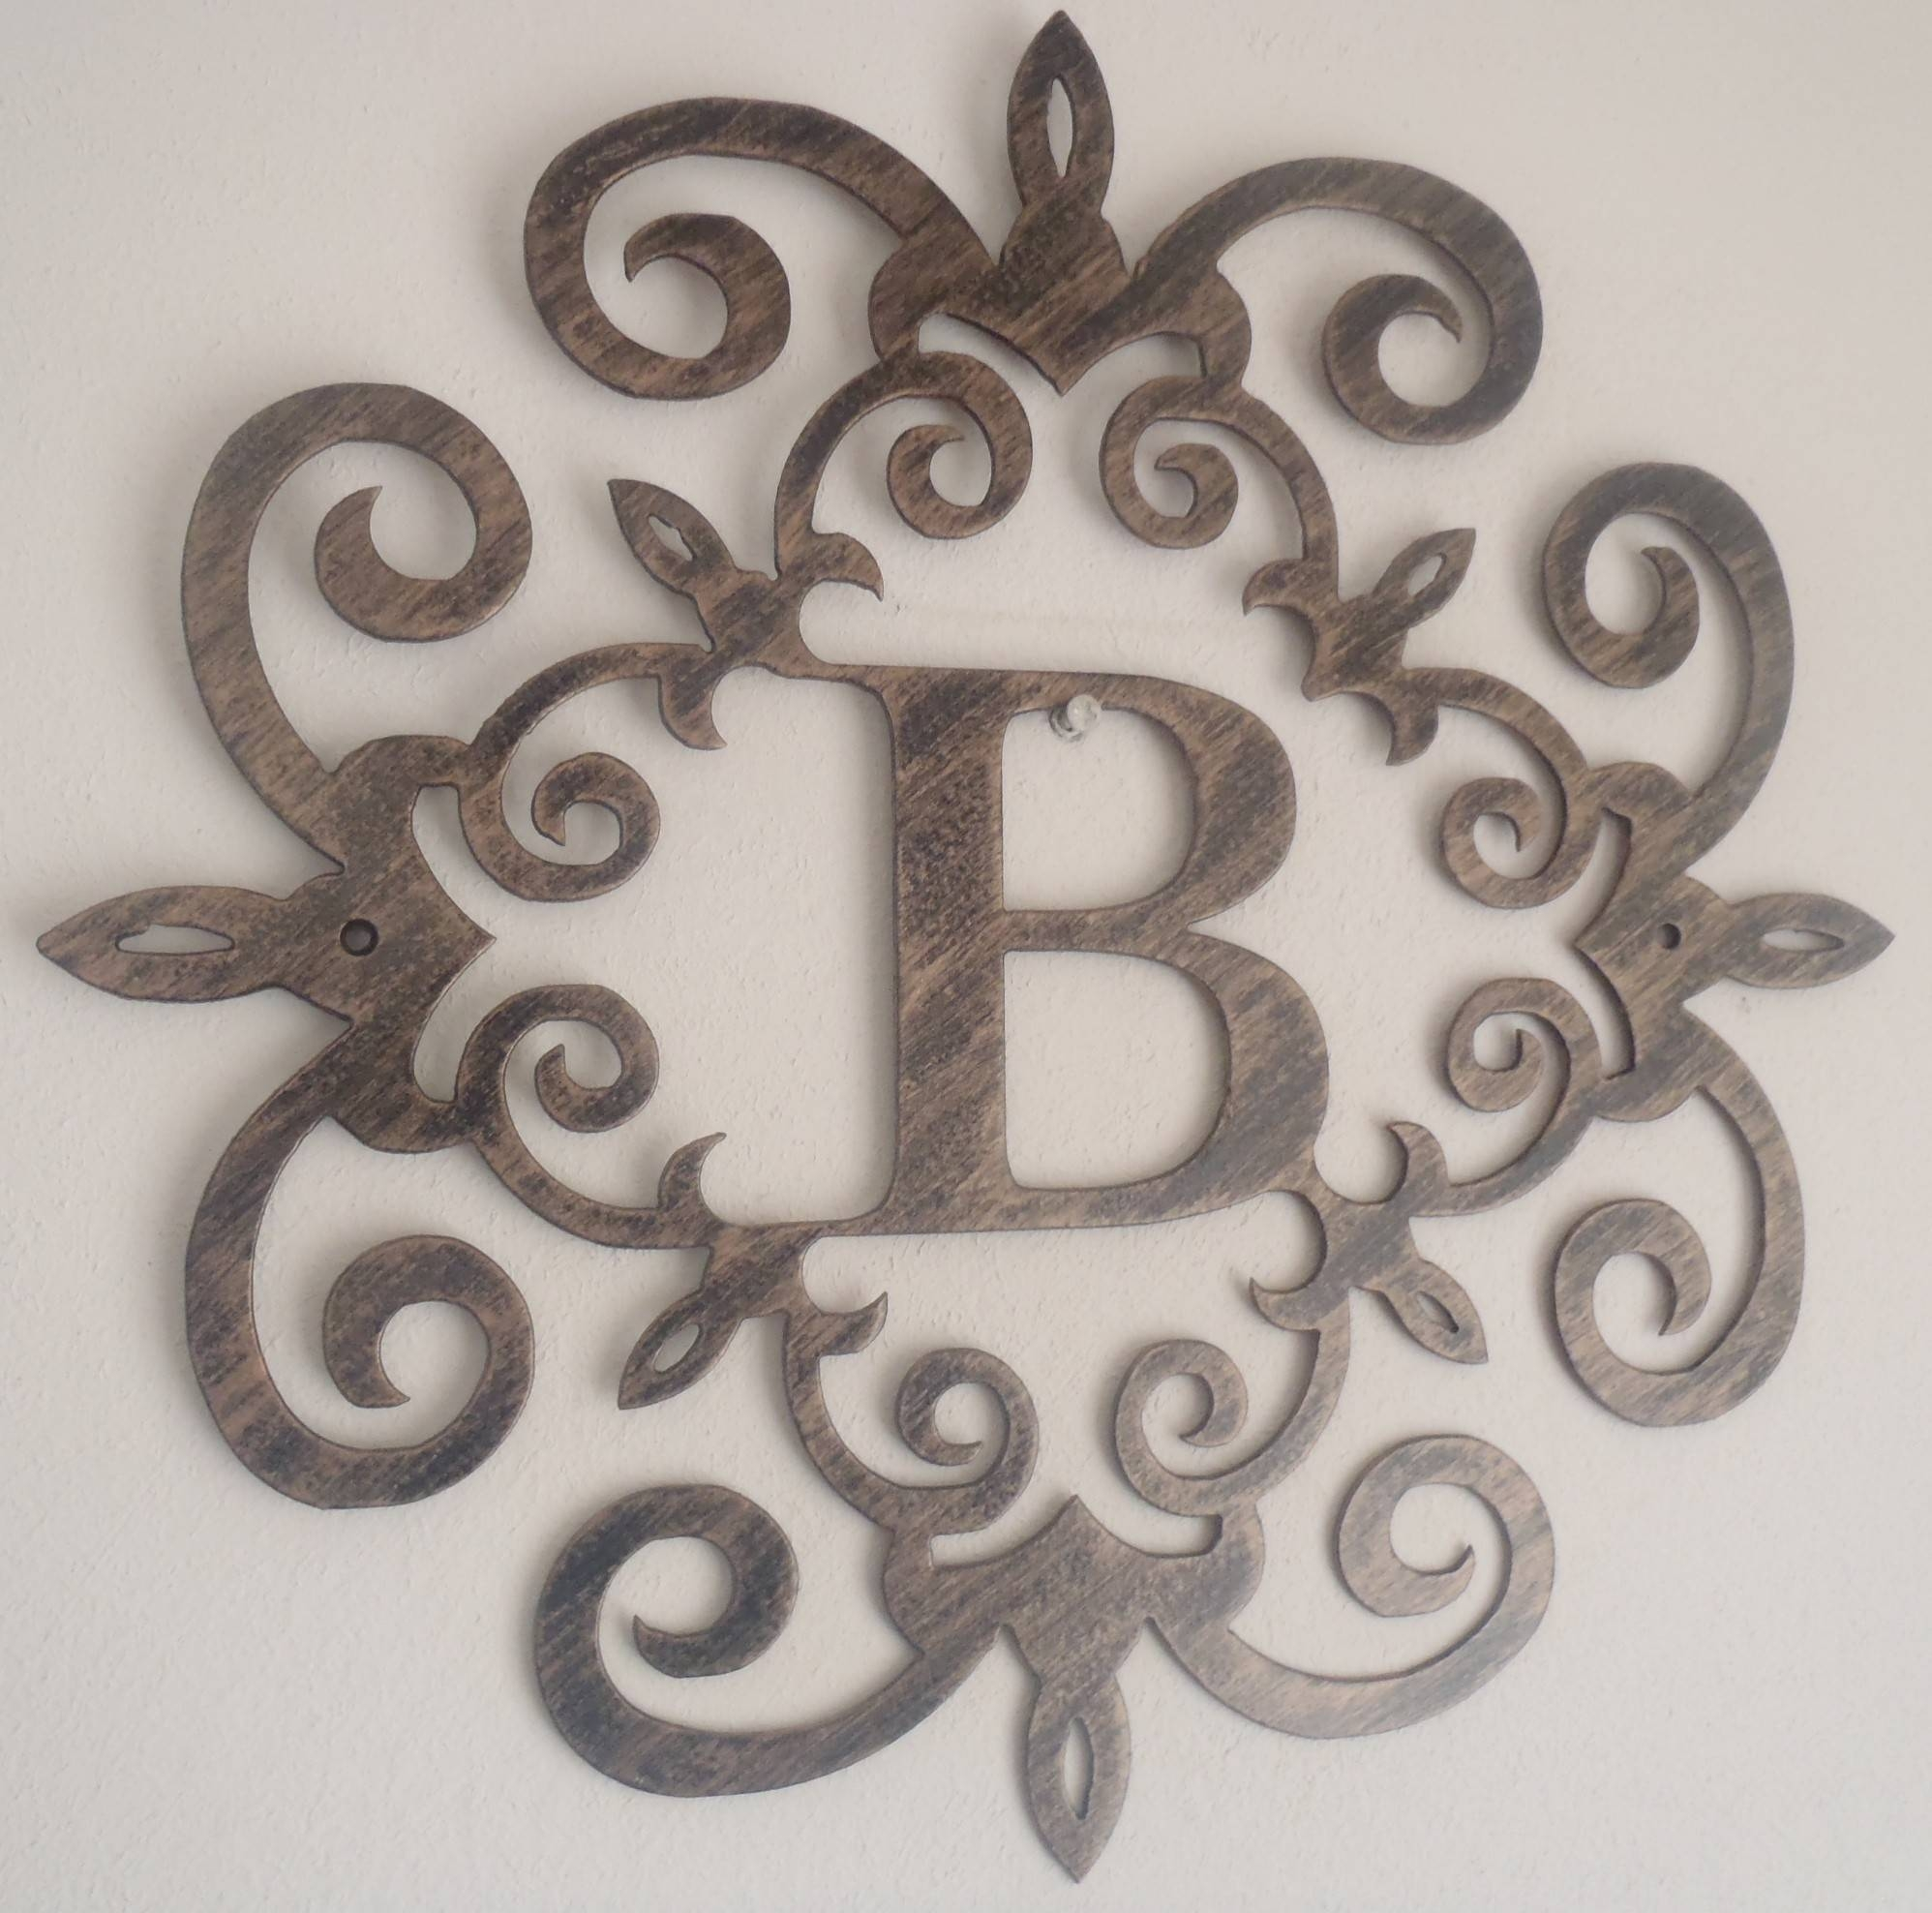 Decorating Large Metal Letters For Wall Decor | Jeffsbakery Intended For Most Up To Date Large Metal Wall Art Decor (View 5 of 20)